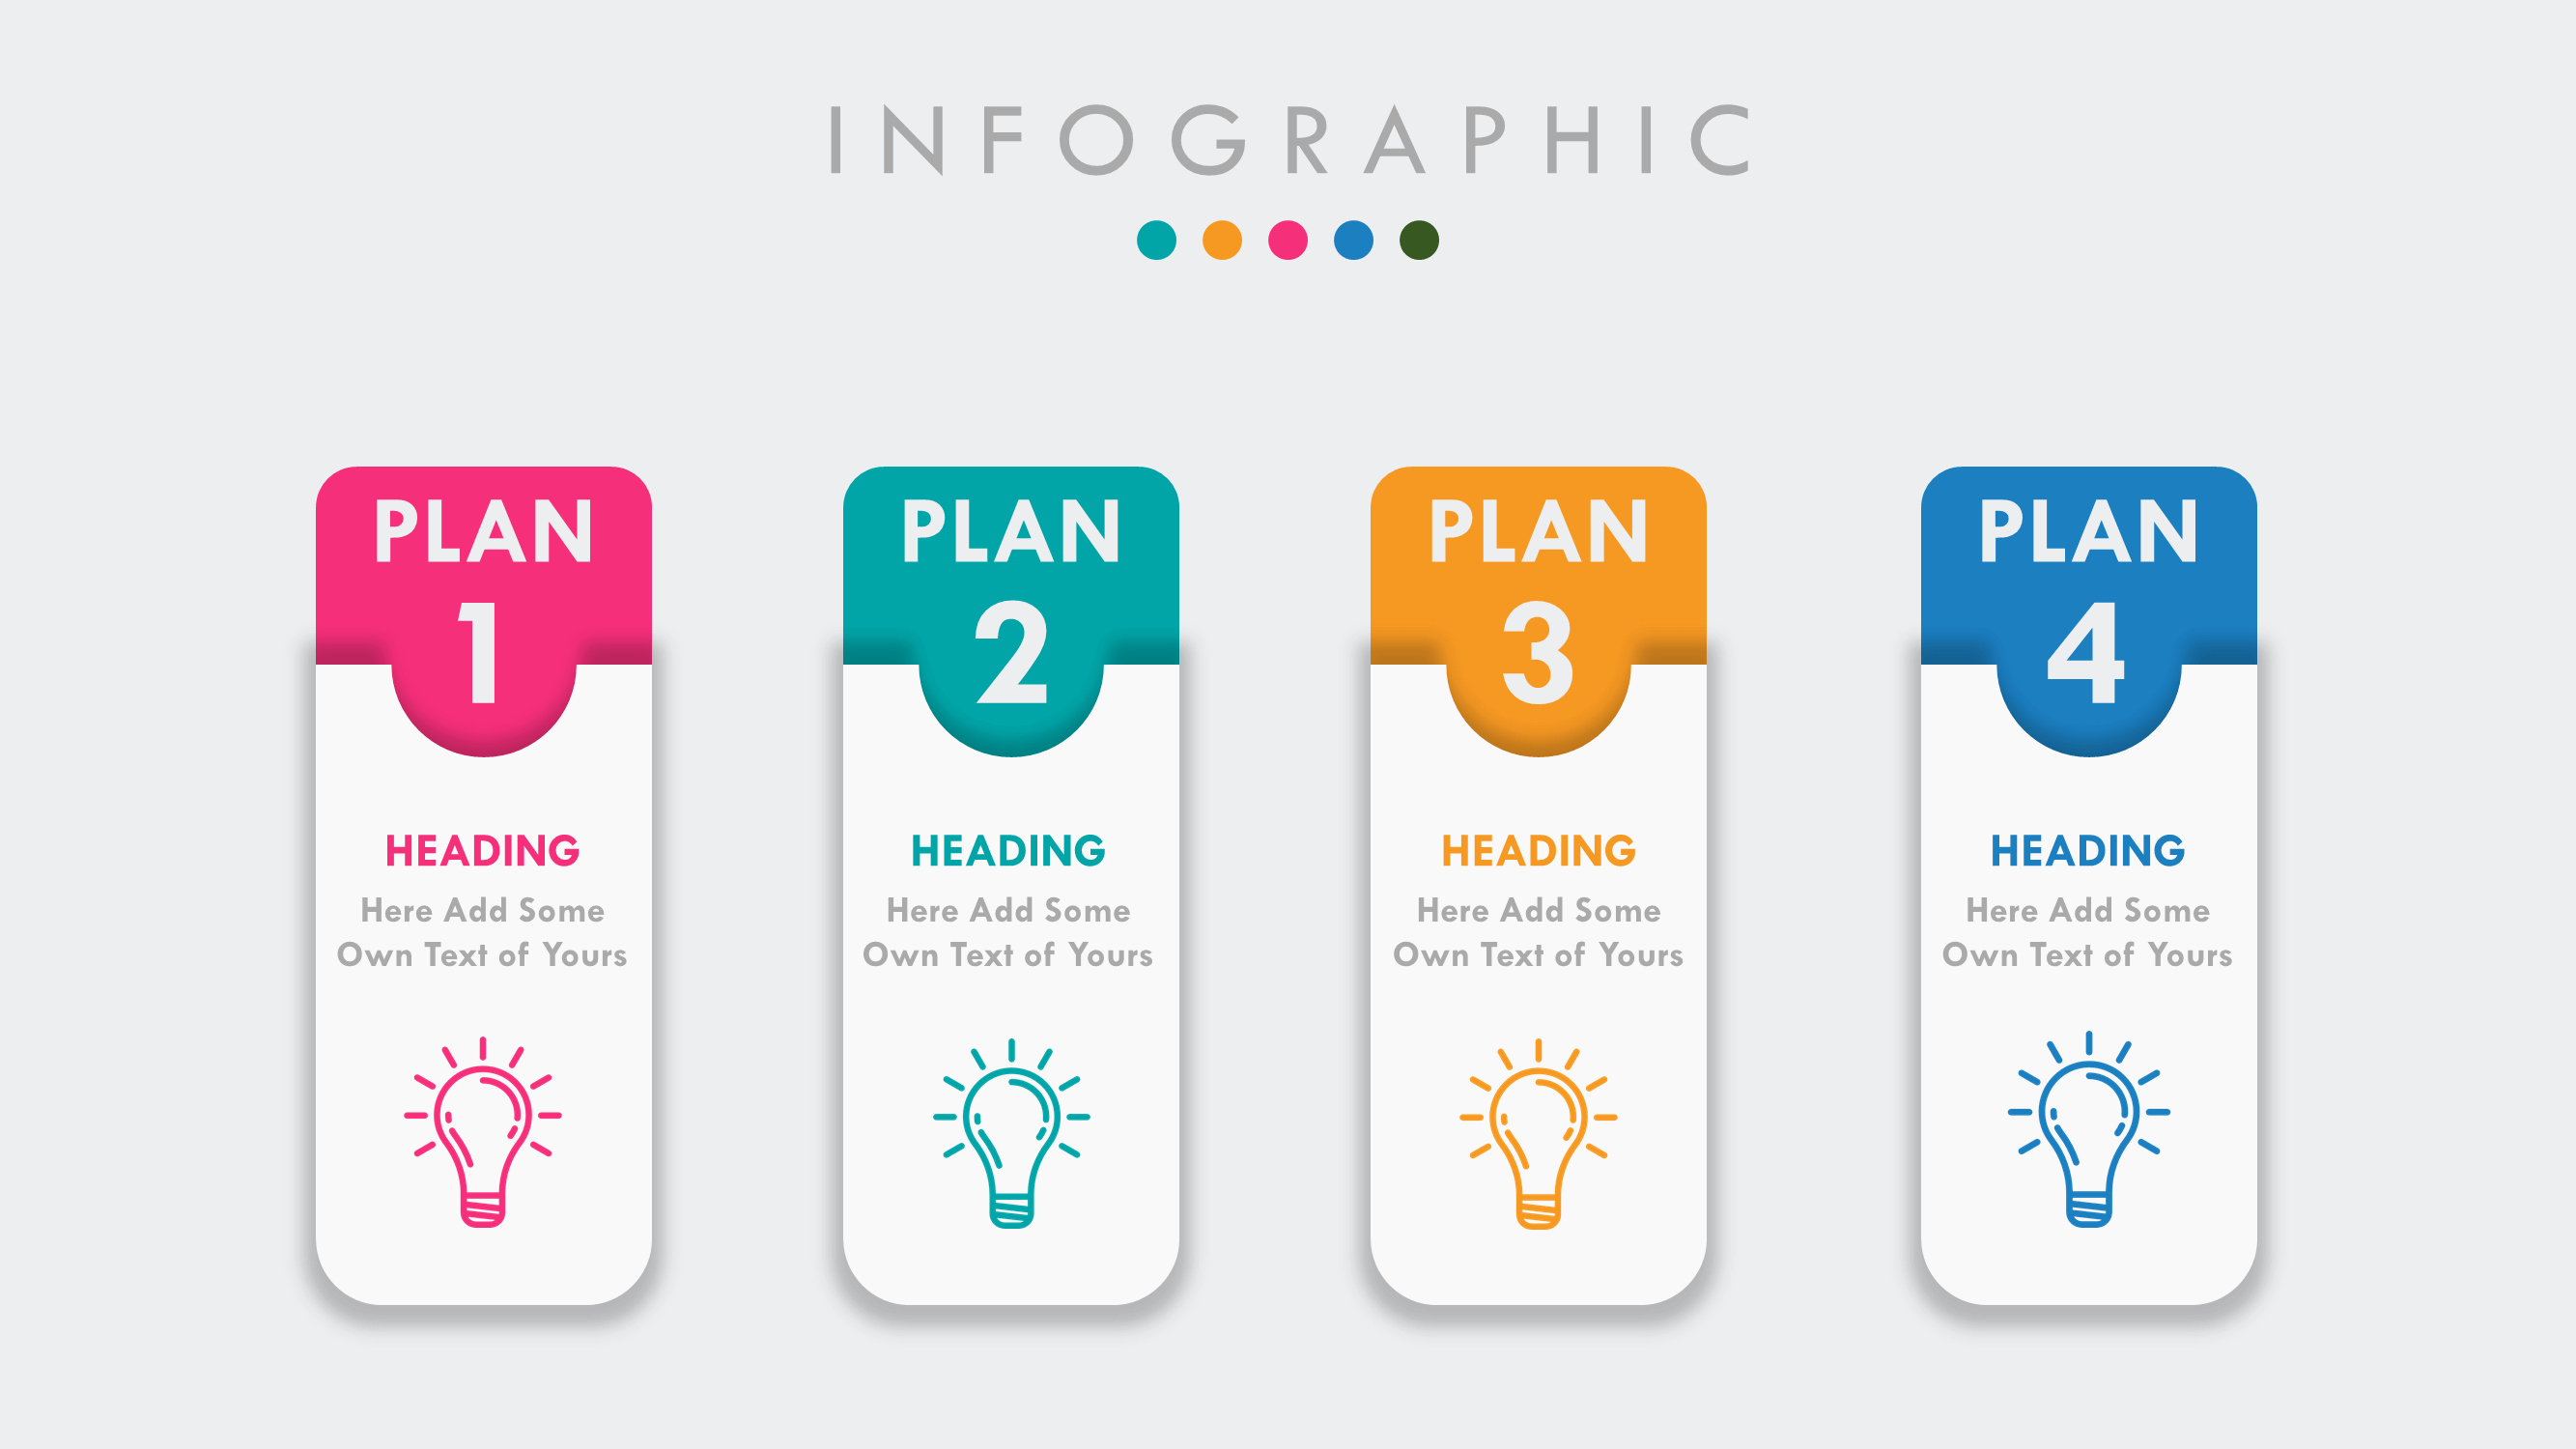 Free Downloadable Powerpoint Presentation Templates Awesome Free Infographic Powerpoint Presentation Template